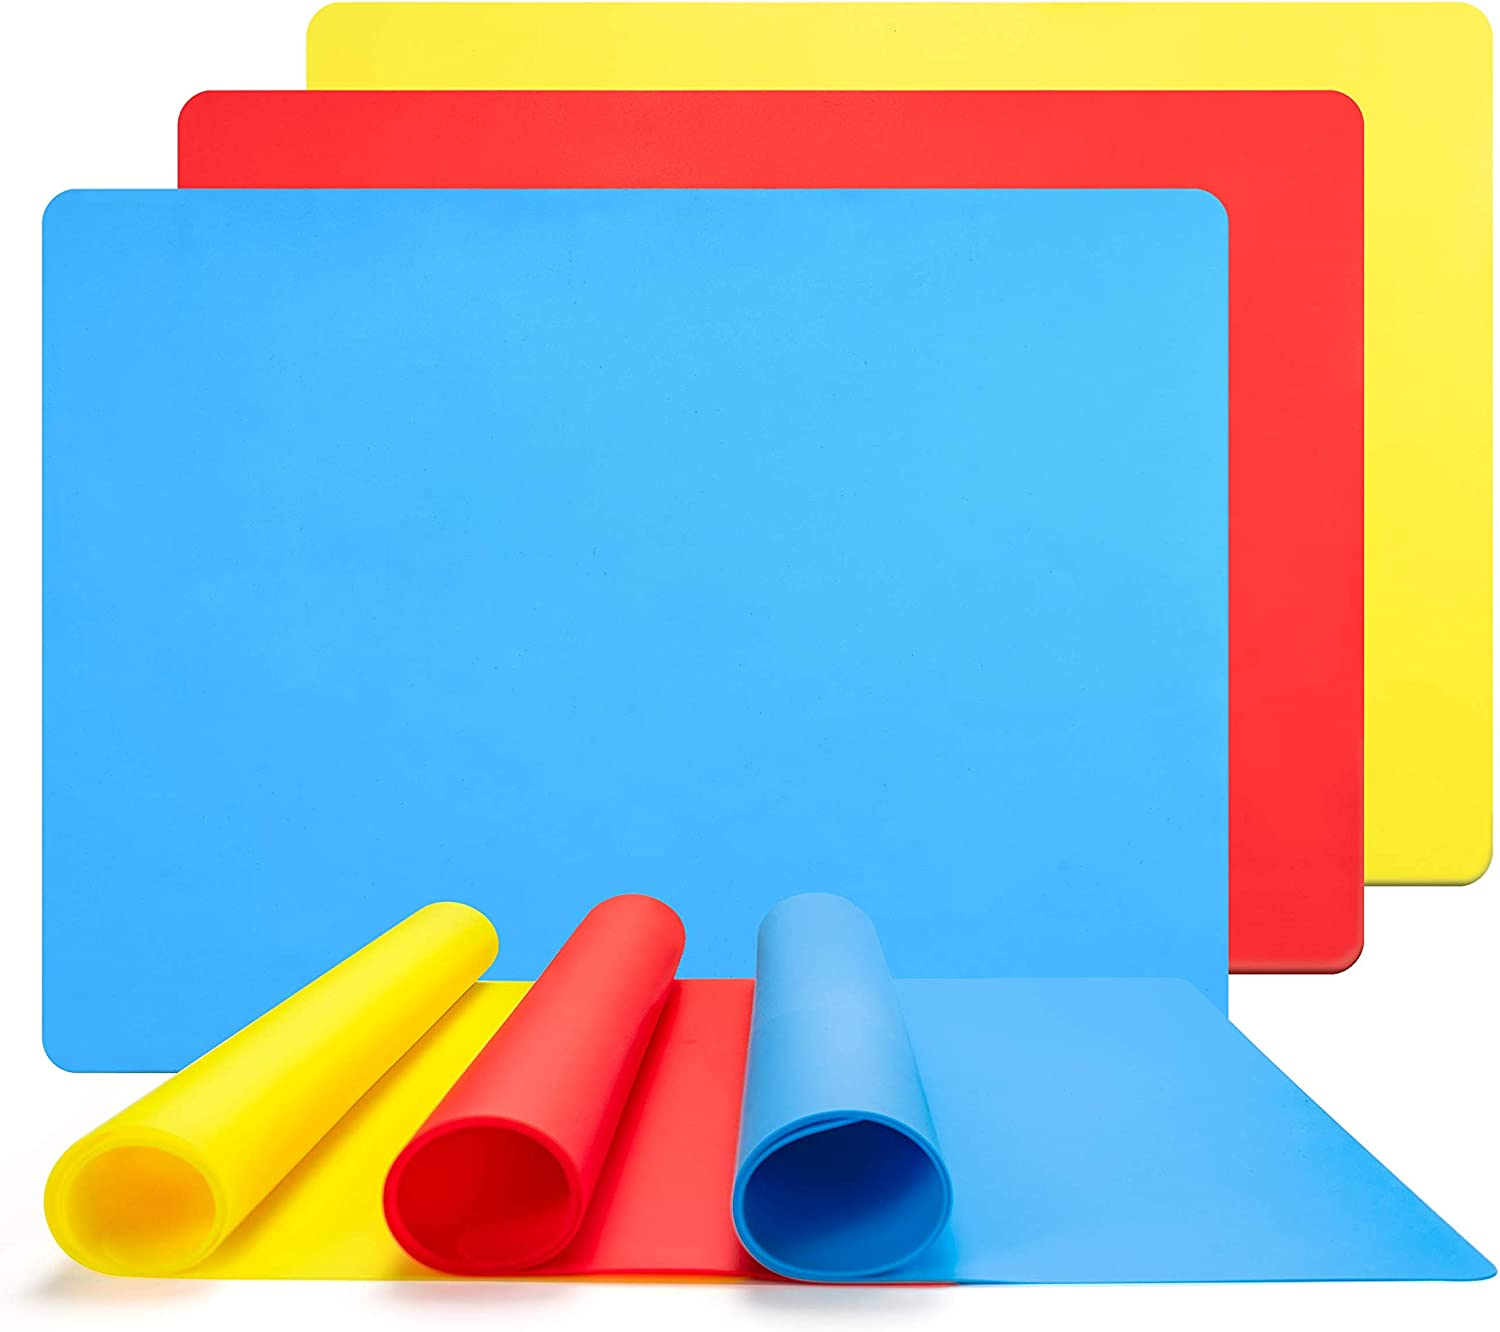 Muscccm 3 Pack Extra Large Silicone Sheet for Crafts Casting Moulds Mat, Food Grade Silicone Placemat, Multipurpose Mat, Nonstick Nonskid Heat-Resistant,Blue & Red & Yellow